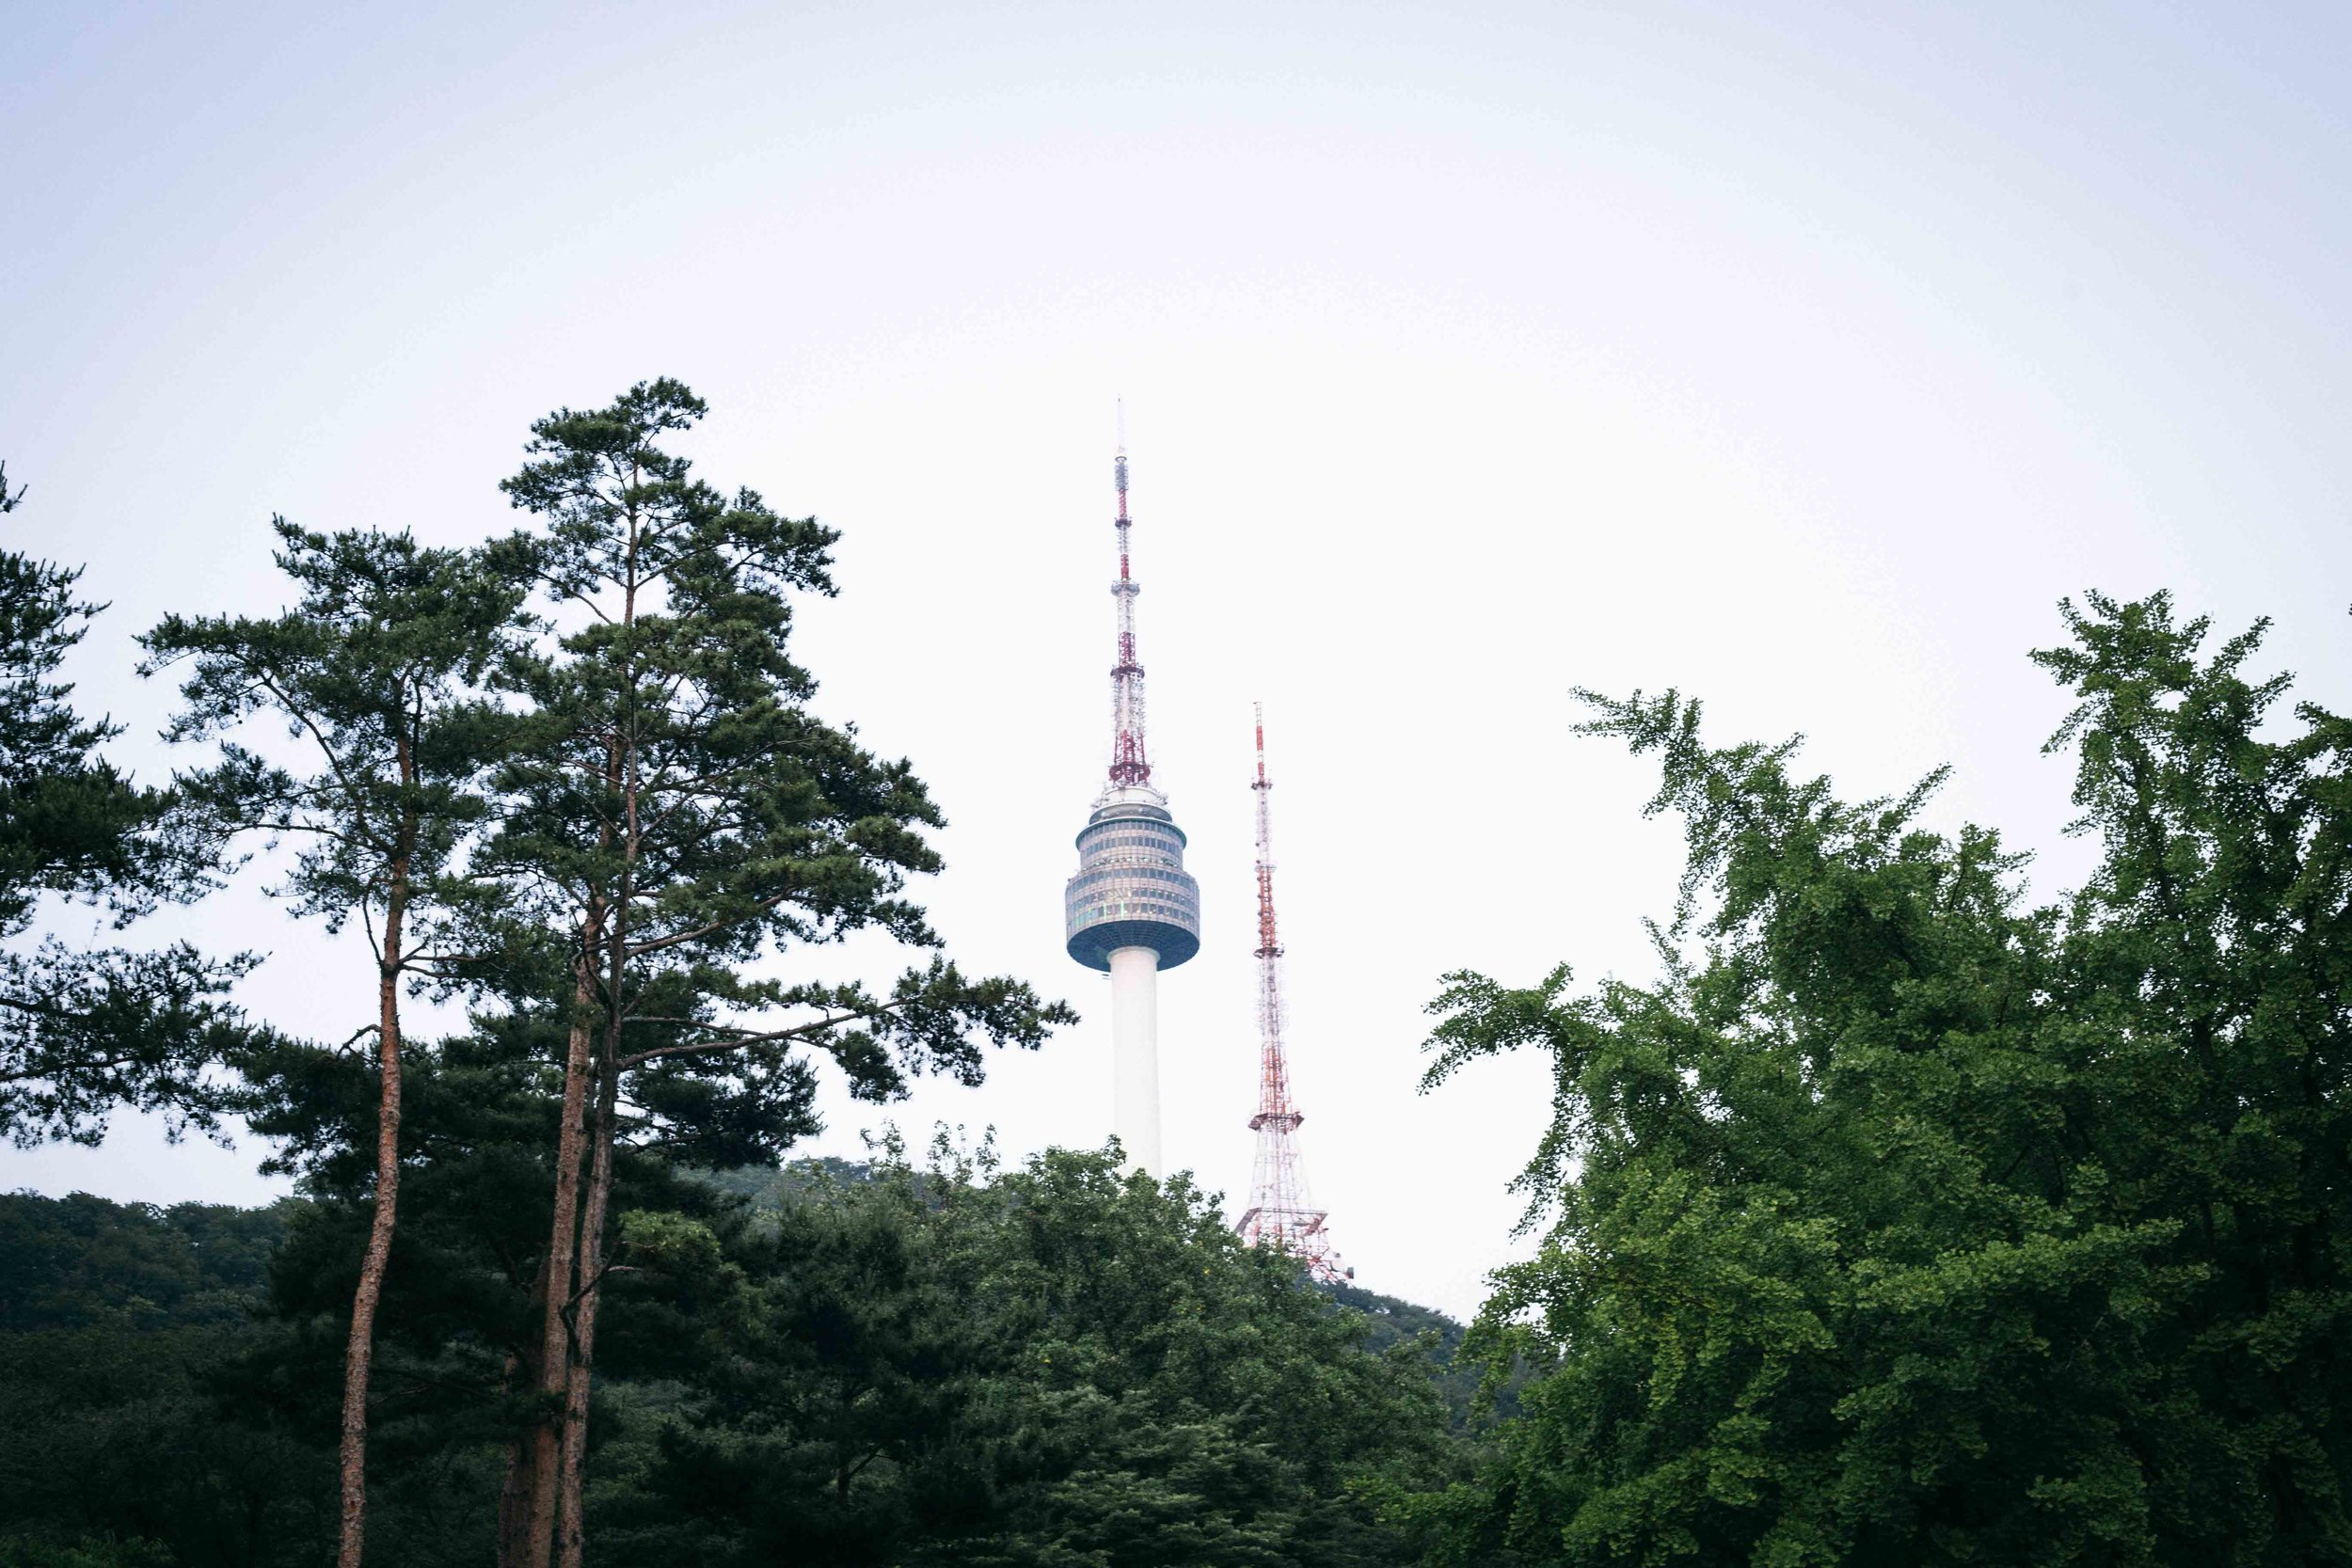 The Seoul Tower